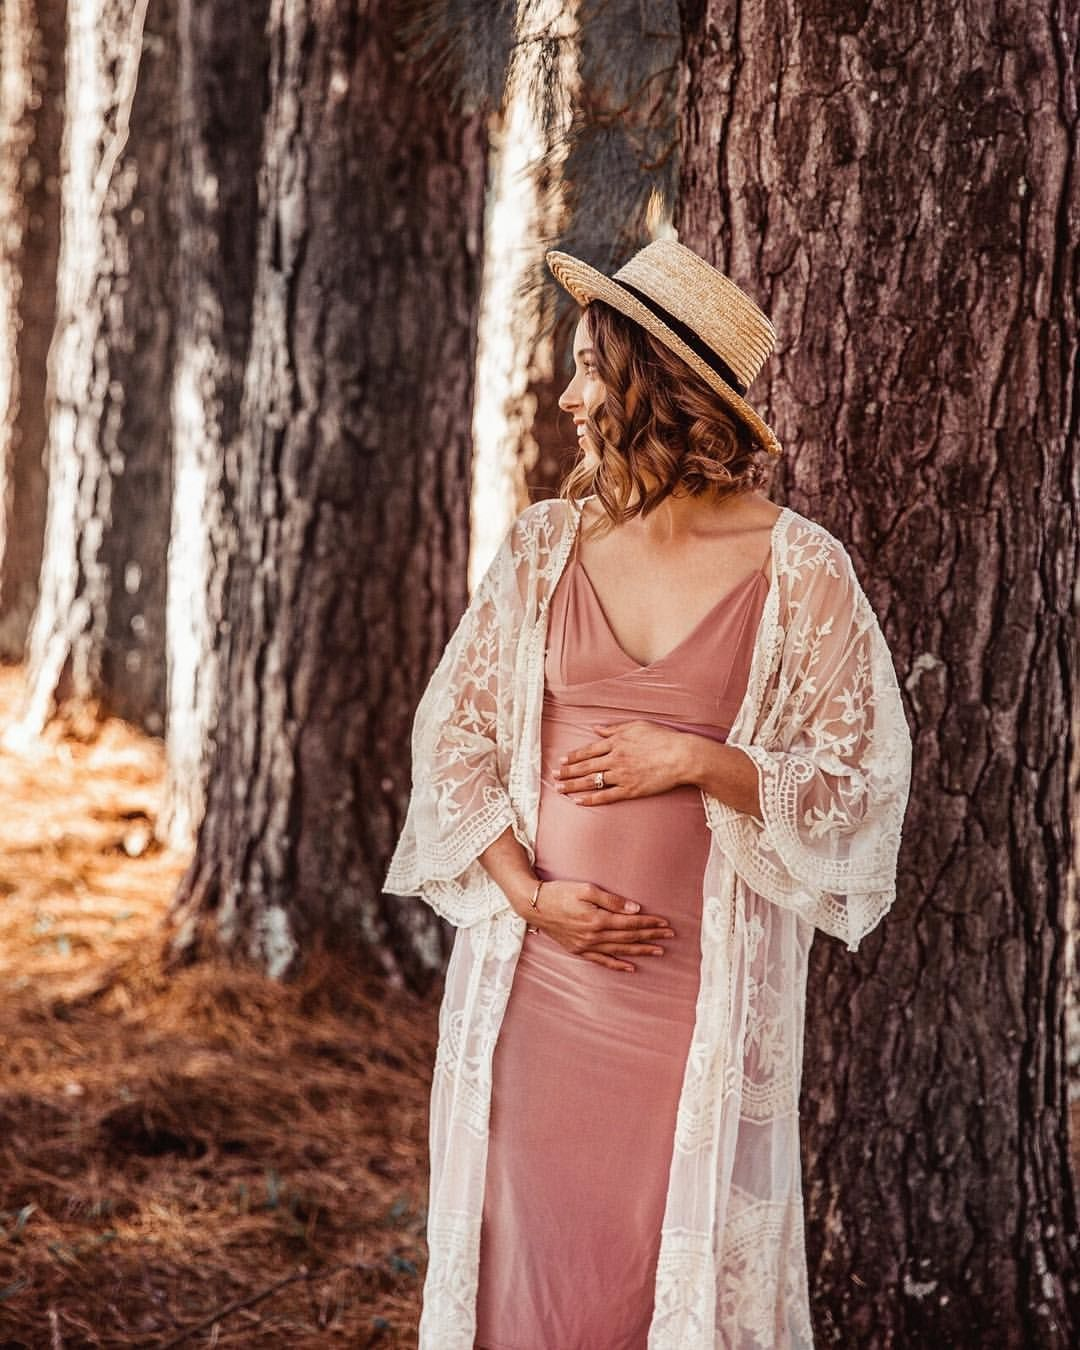 e3321630a07be Maternity pregnancy boho photoshoot pregnant bohemian baby shower  photography lace kimono dress cover up crochet - COVEN and Co